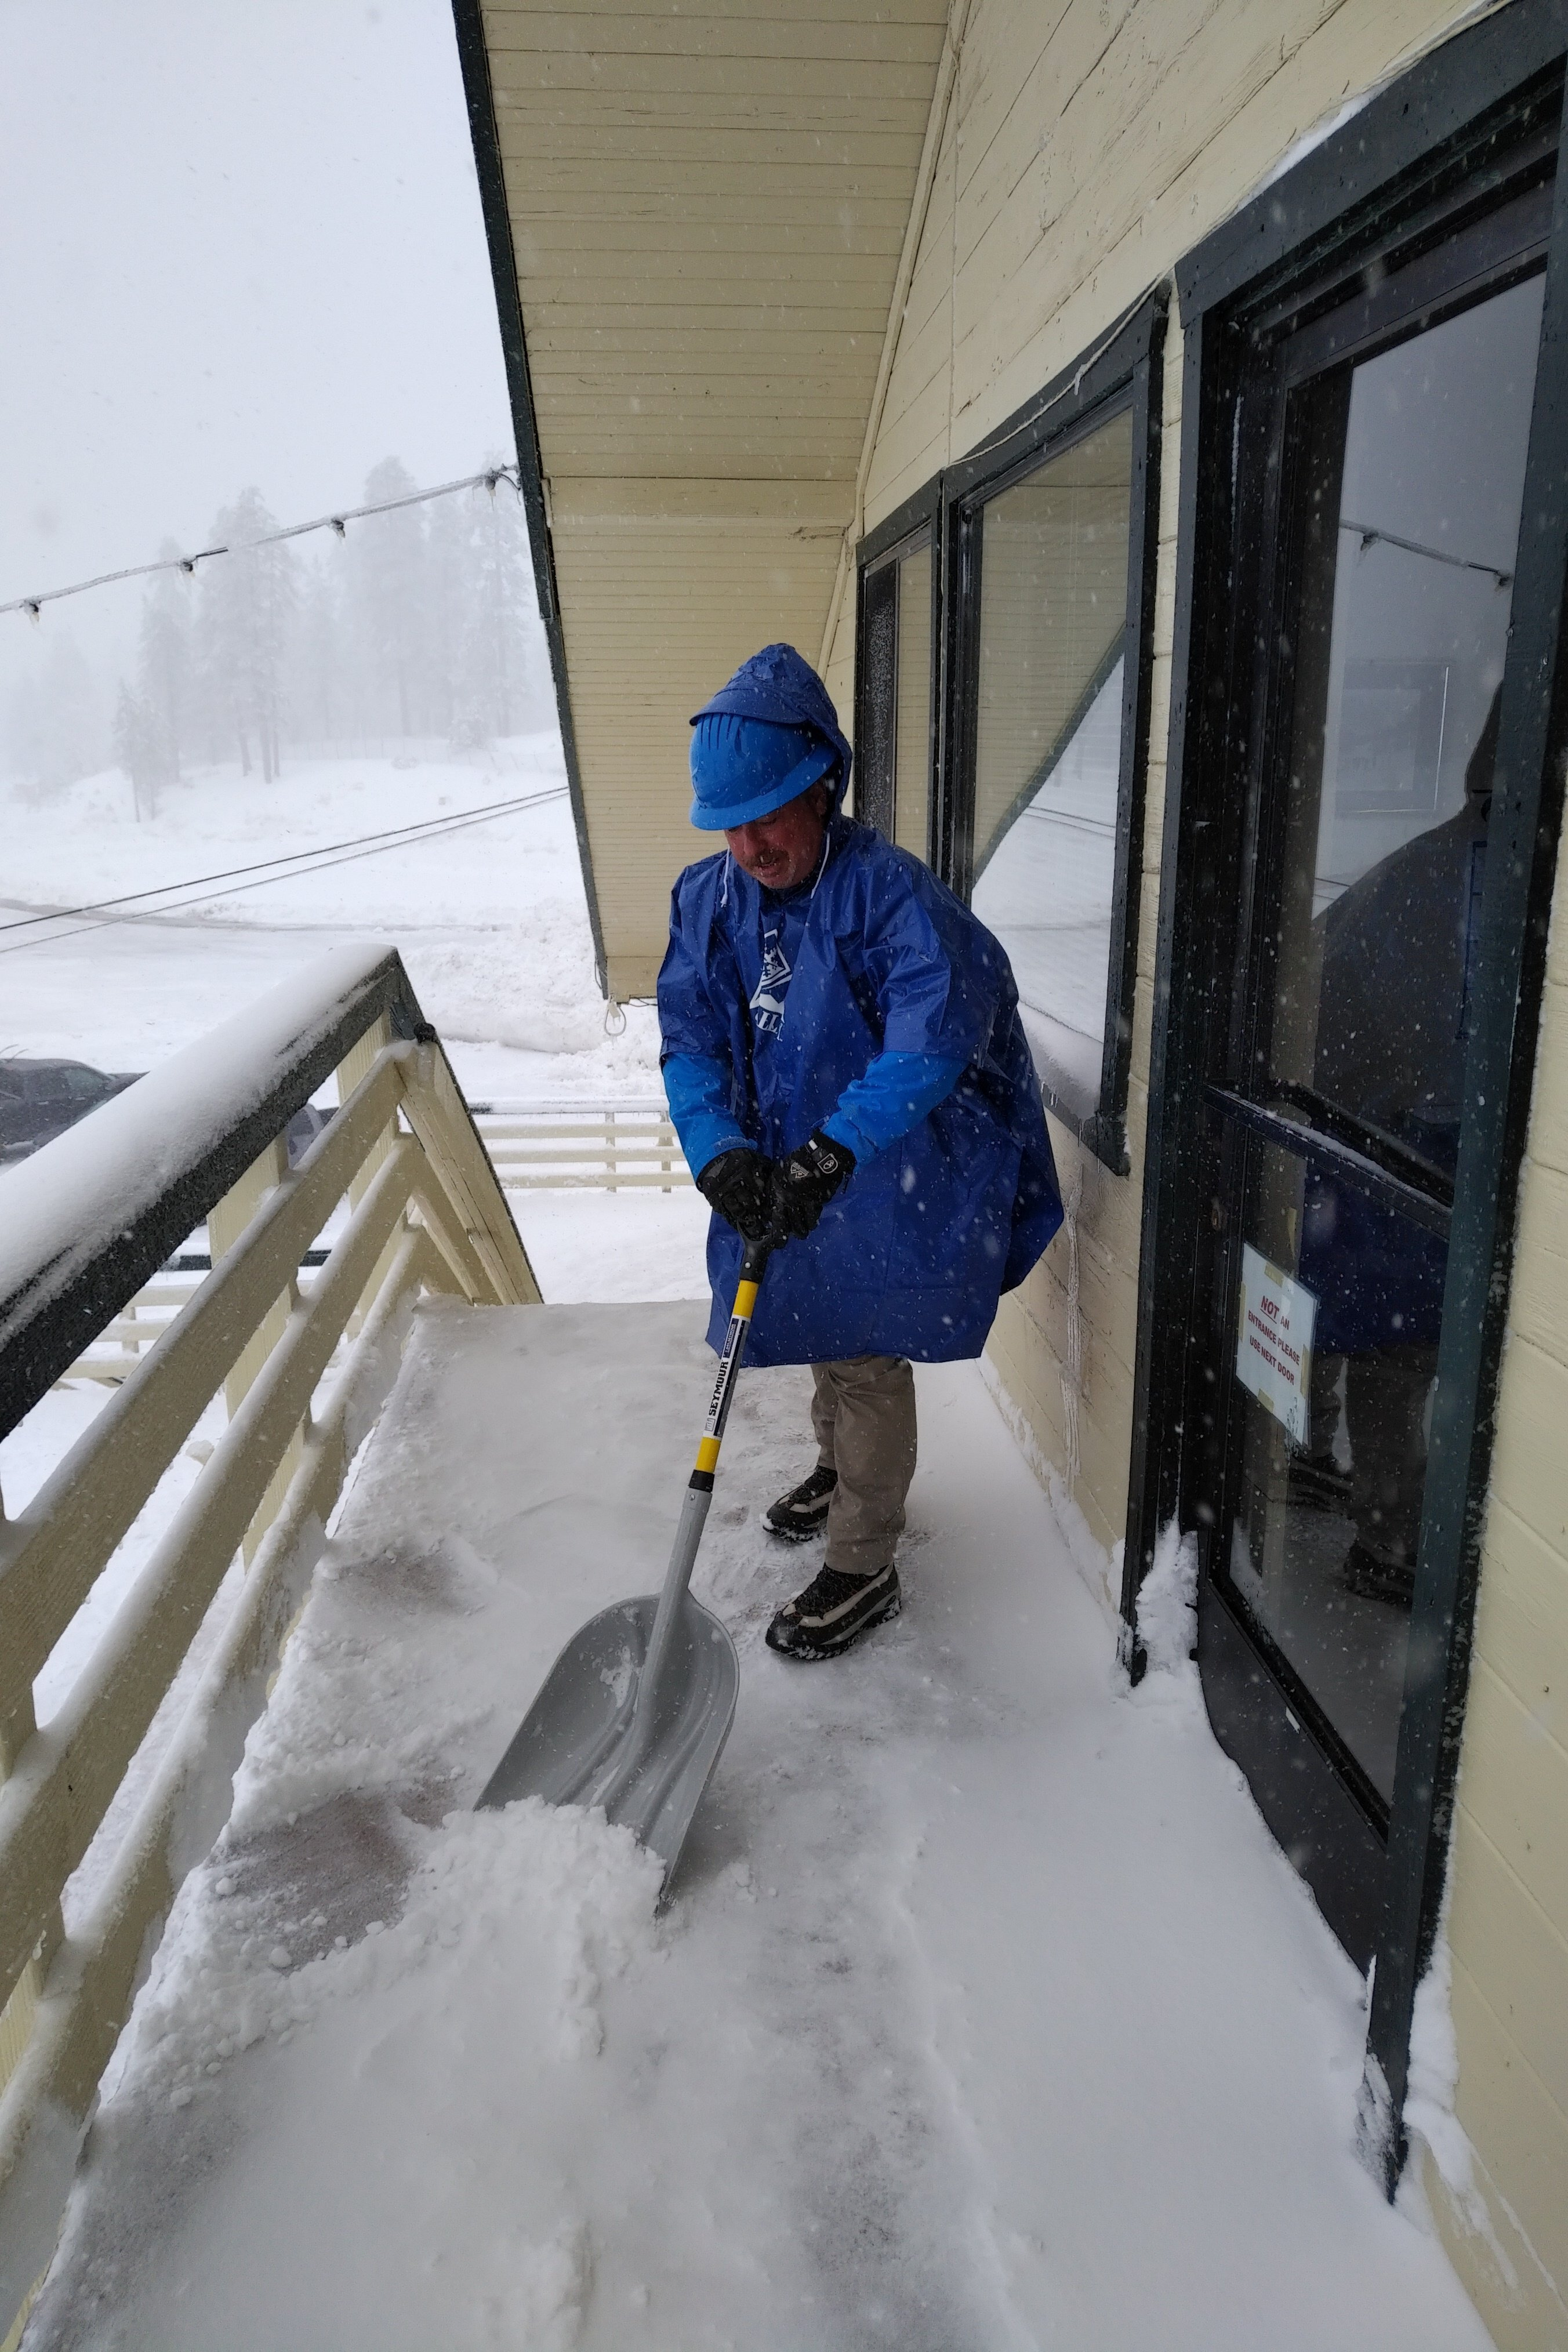 Snow Valley employee shoveling deck